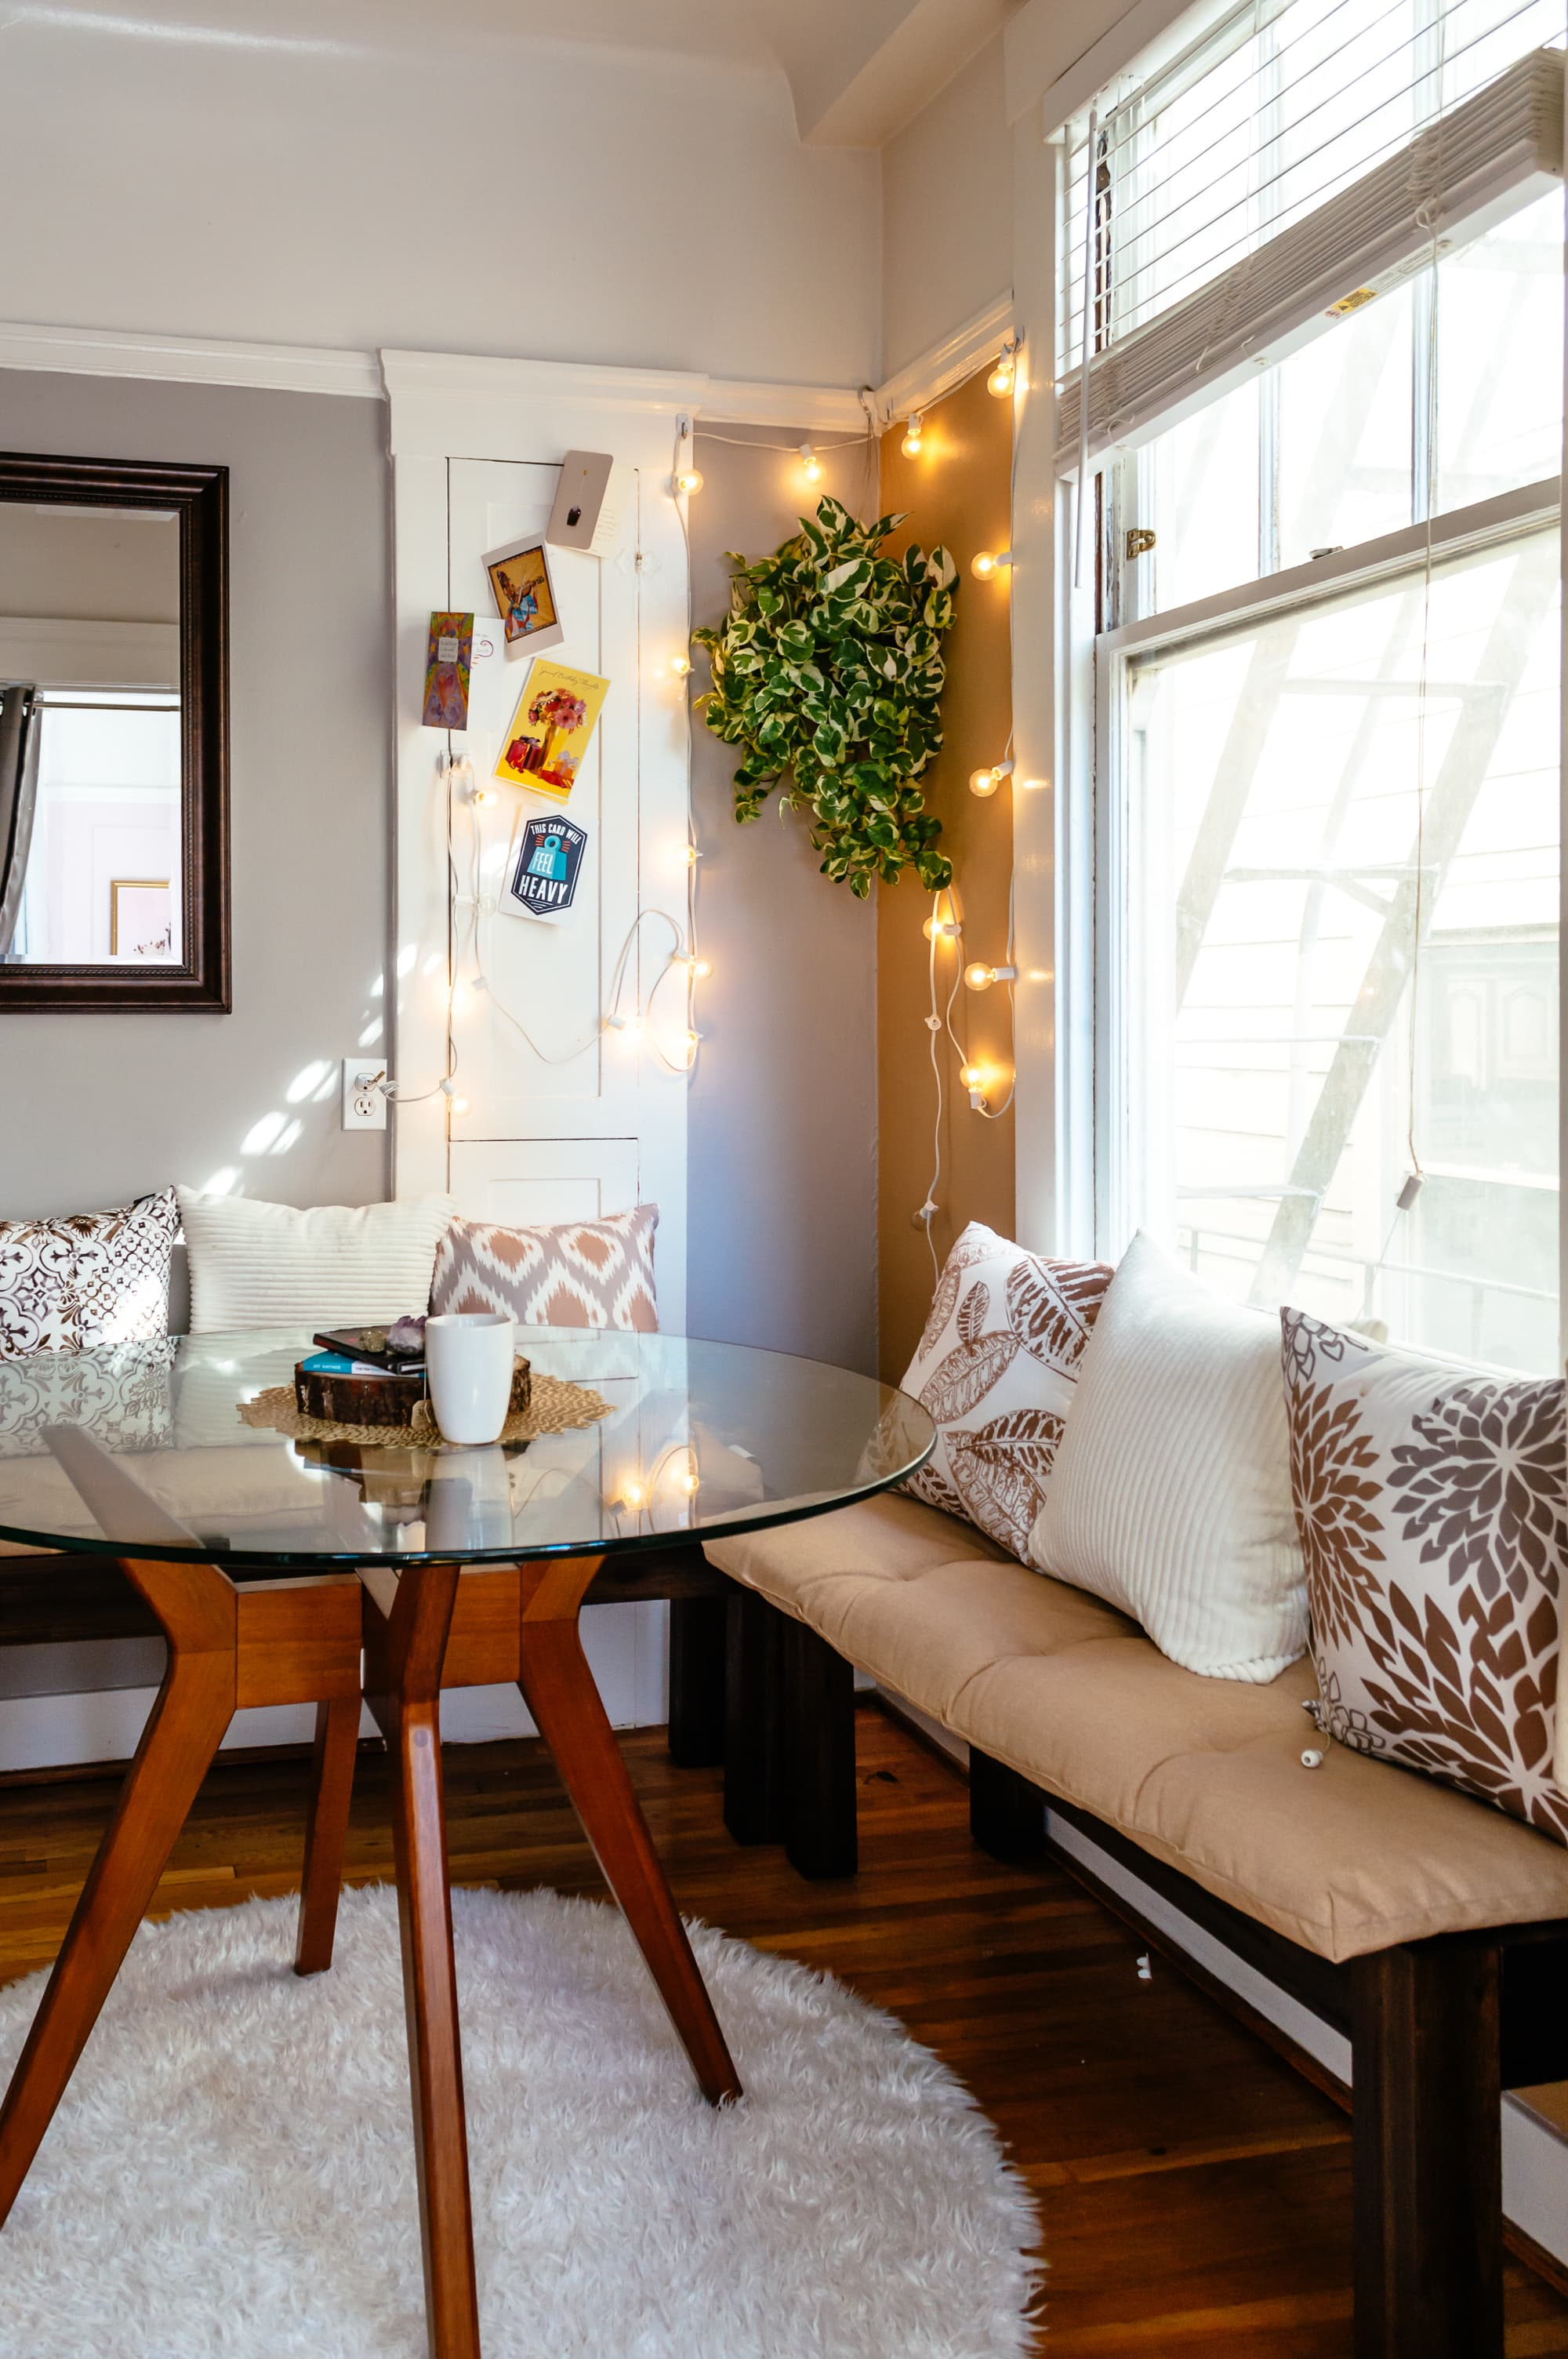 Small Living Room Apartment Therapy: Small Space Living San Francisco Studio Apartment